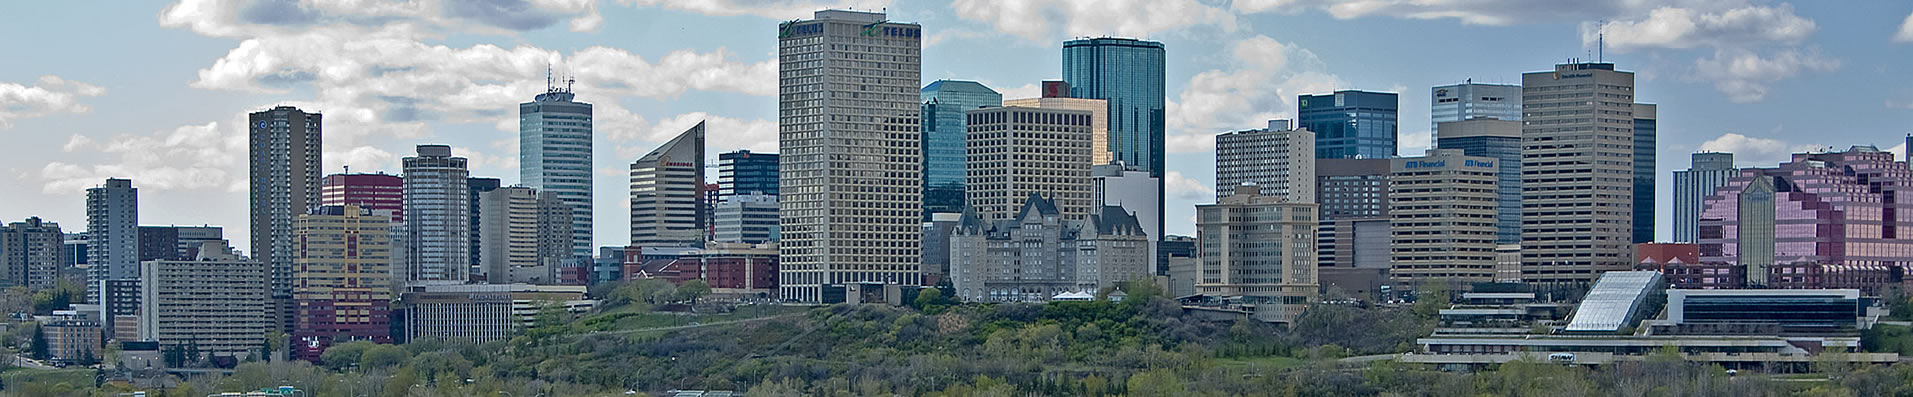 Cushman & Wakefield Edmonton Commercial Real Estate